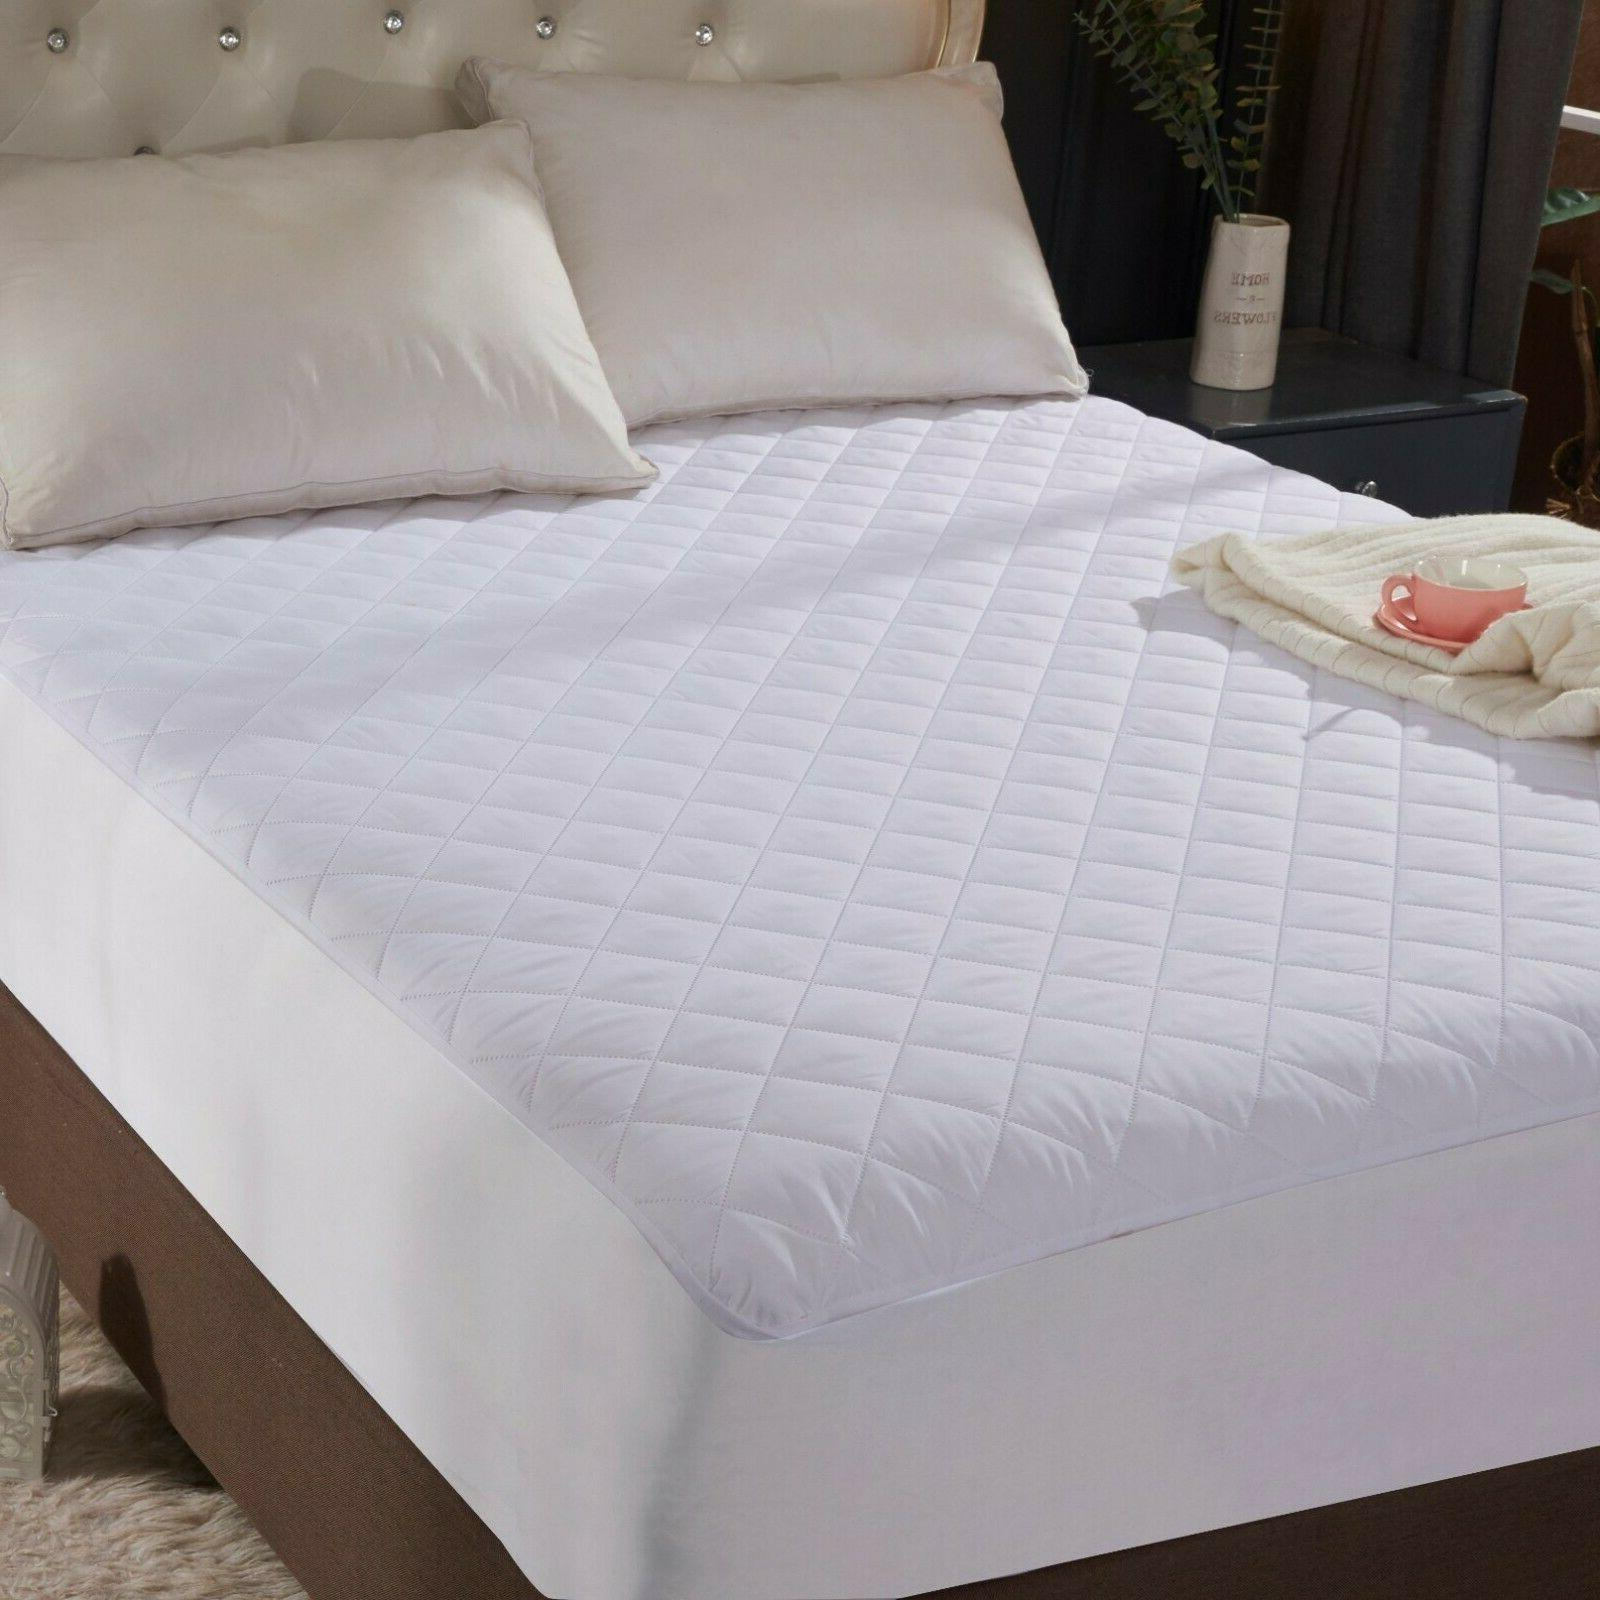 cal king quilted mattress protector pad topper